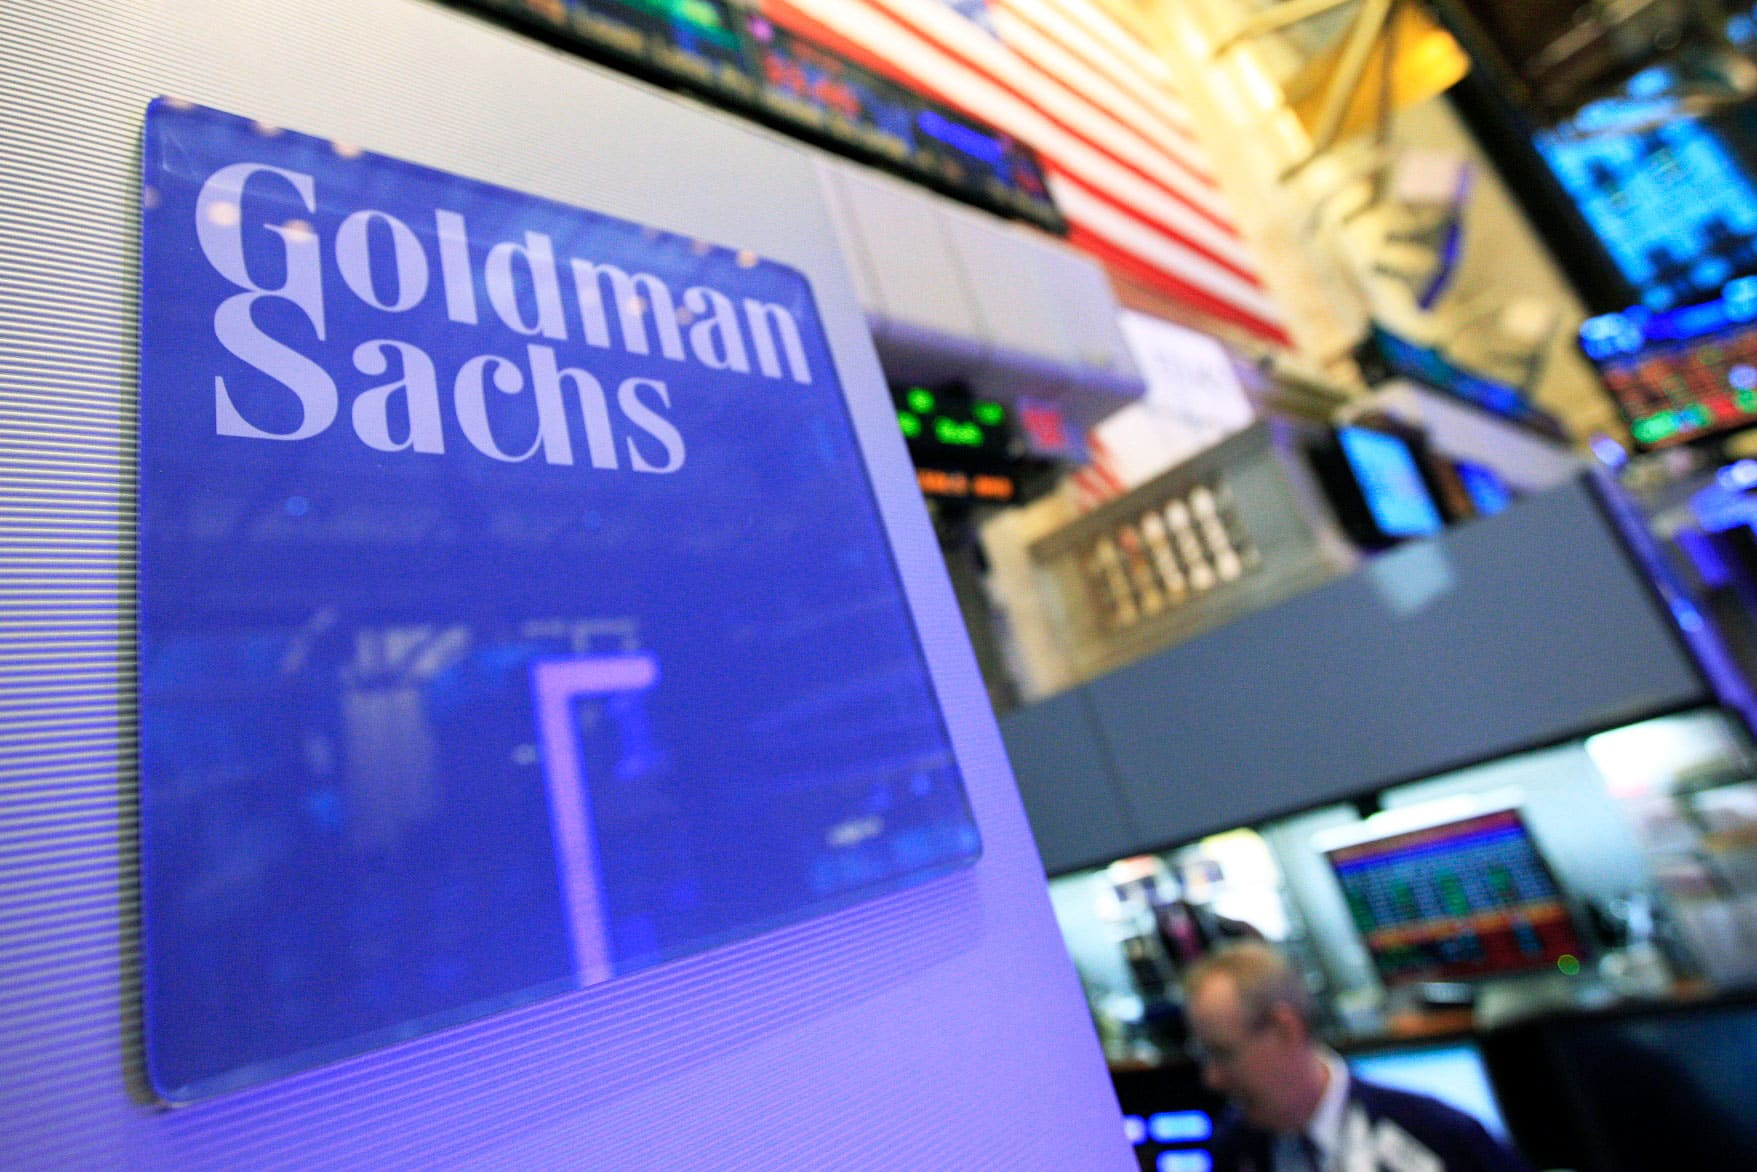 Not discussing race issues is 'unacceptable,' black managing director at Goldman Sachs says